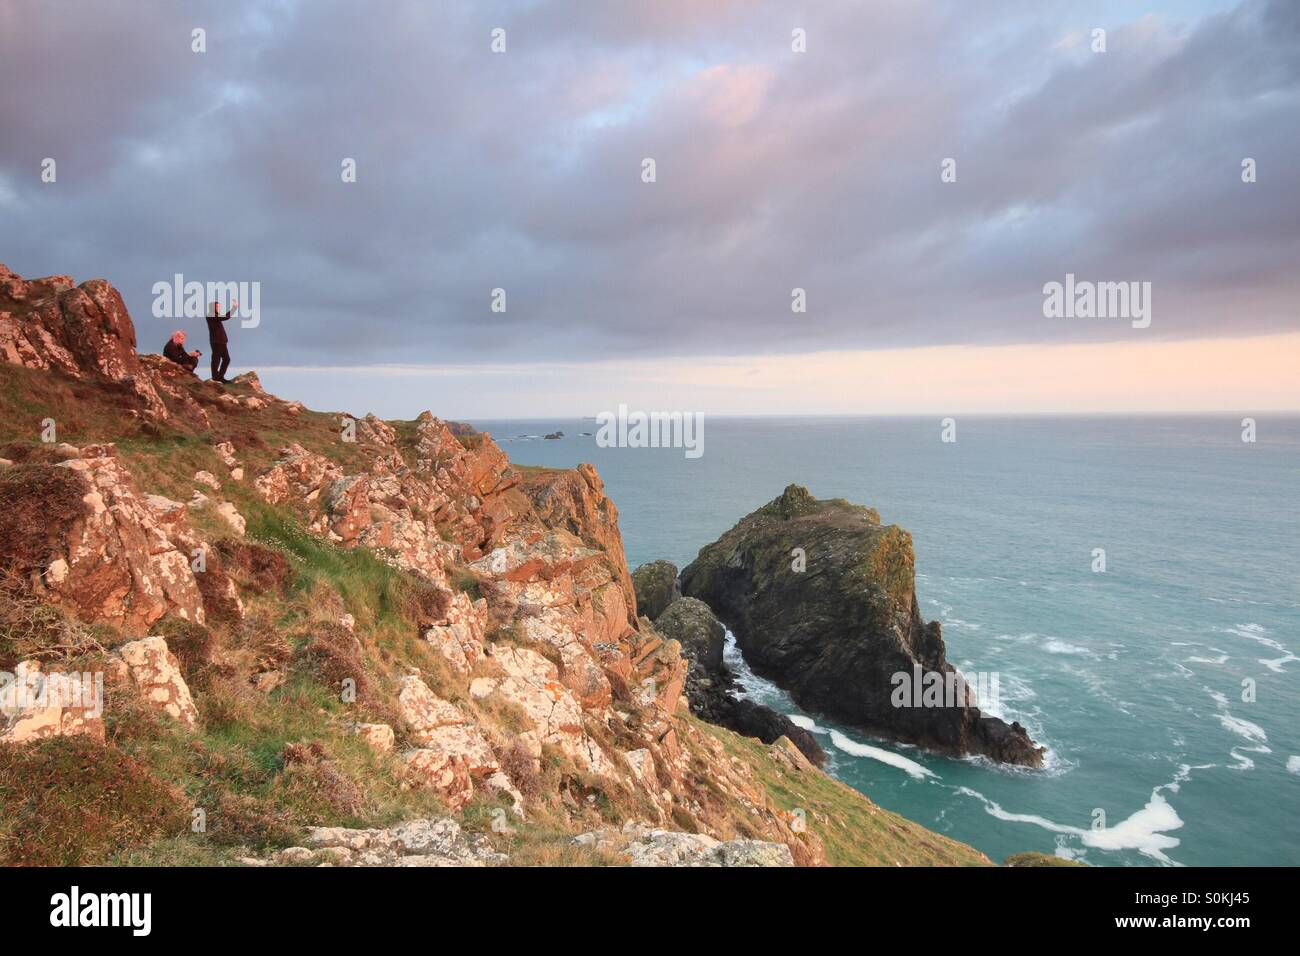 Two people taking selfies on a cliff side at sunset. Overlooking the ocean. - Stock Image